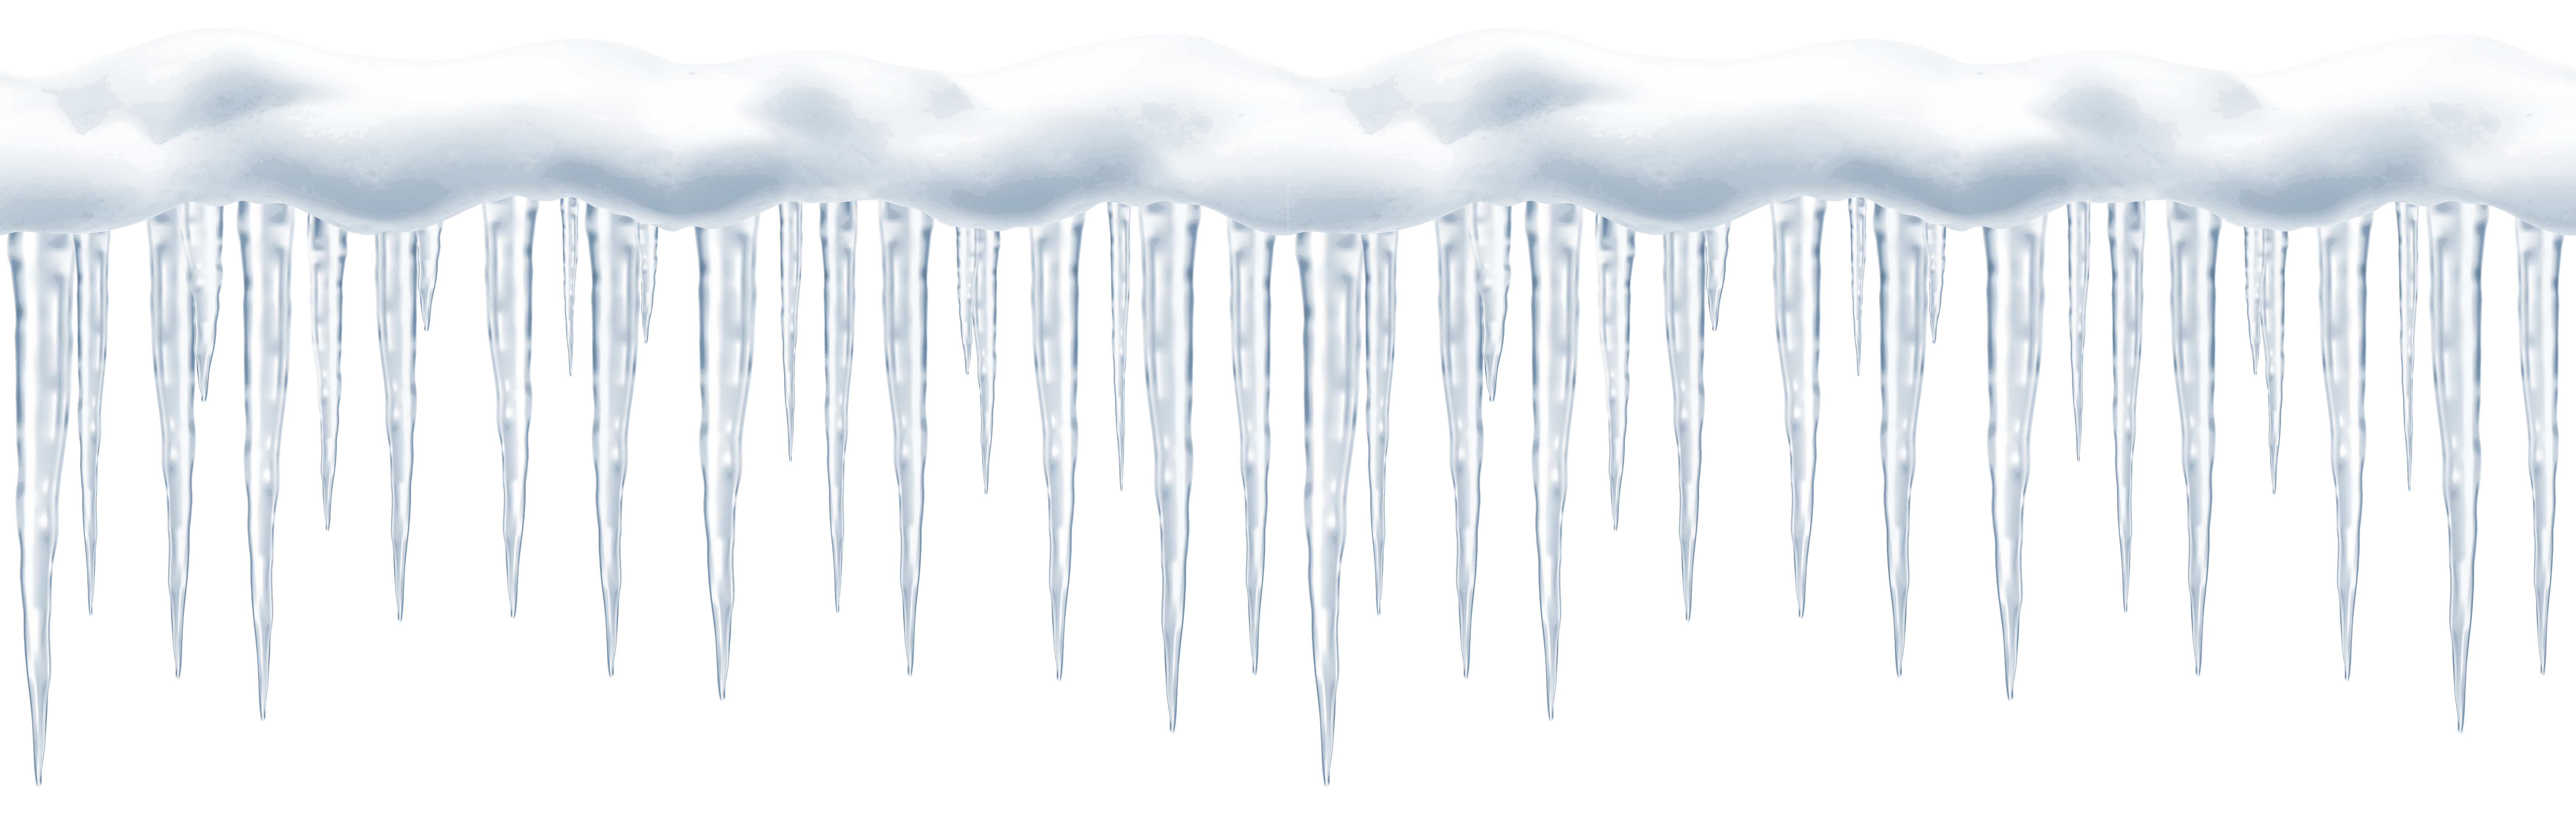 Free icicle clipart